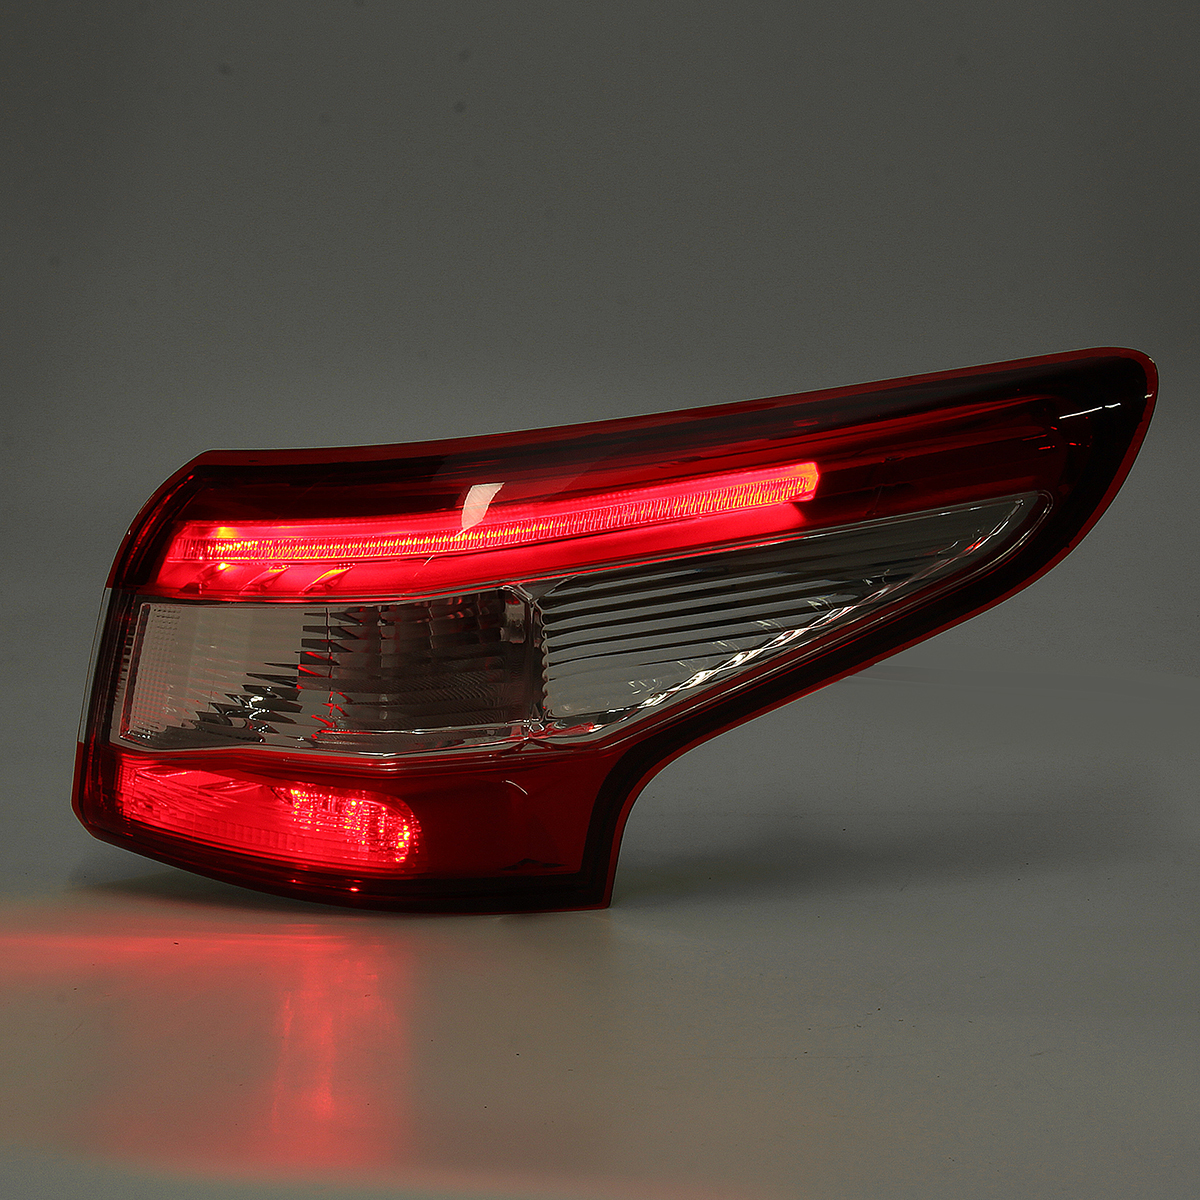 Car Outer Rear LED Tail Light Red Left/Right w/ Harness for Nissan Qashqai 2014-2016